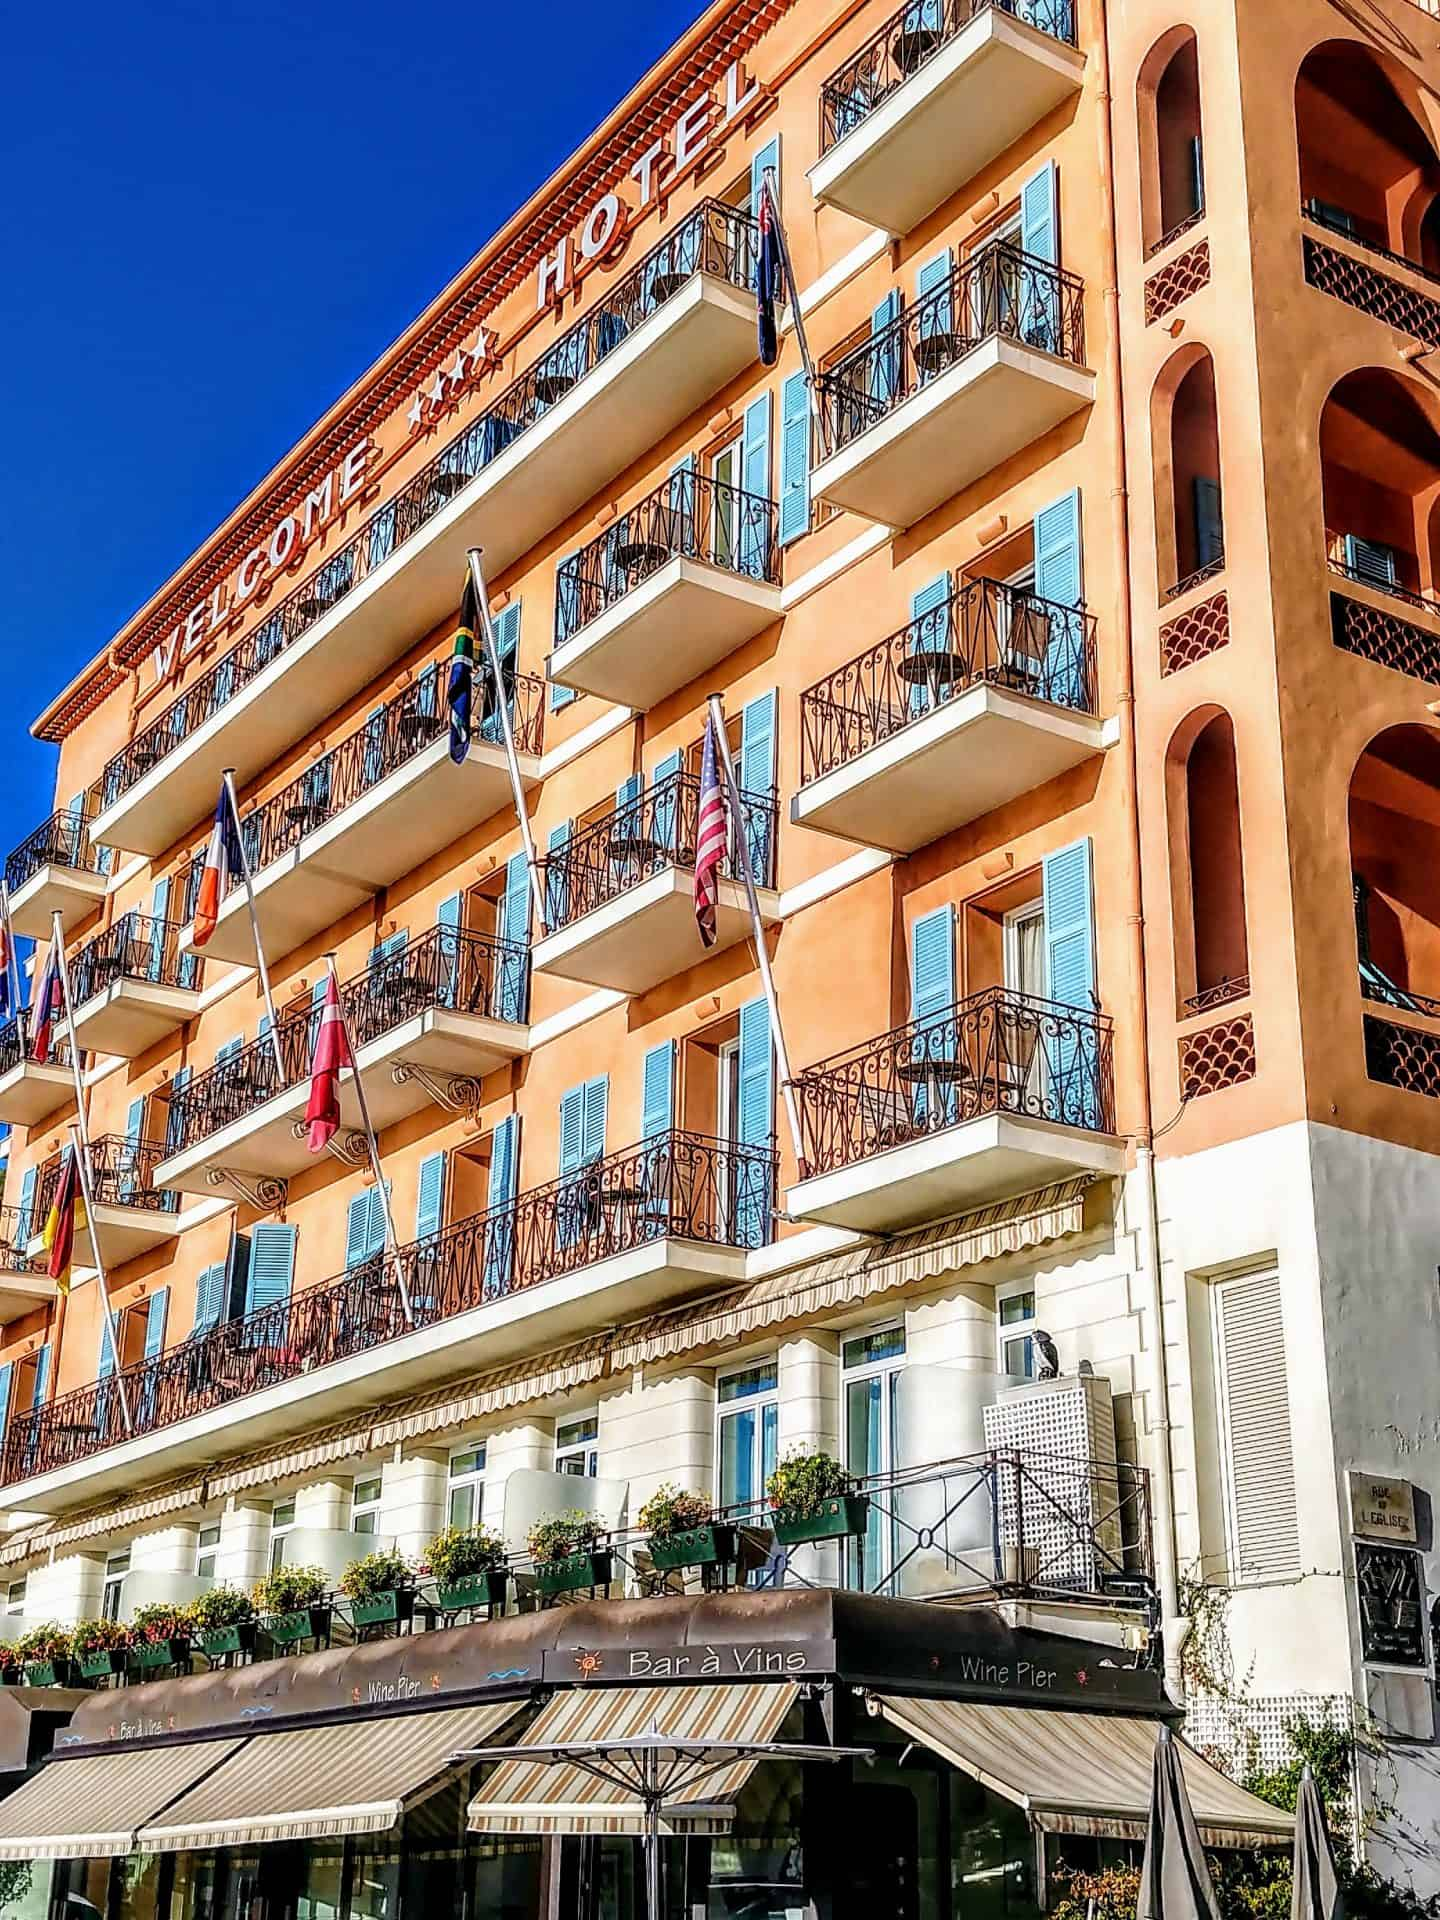 Hotel Welcome Villefranche Sur Mer Diana S Healthy Living